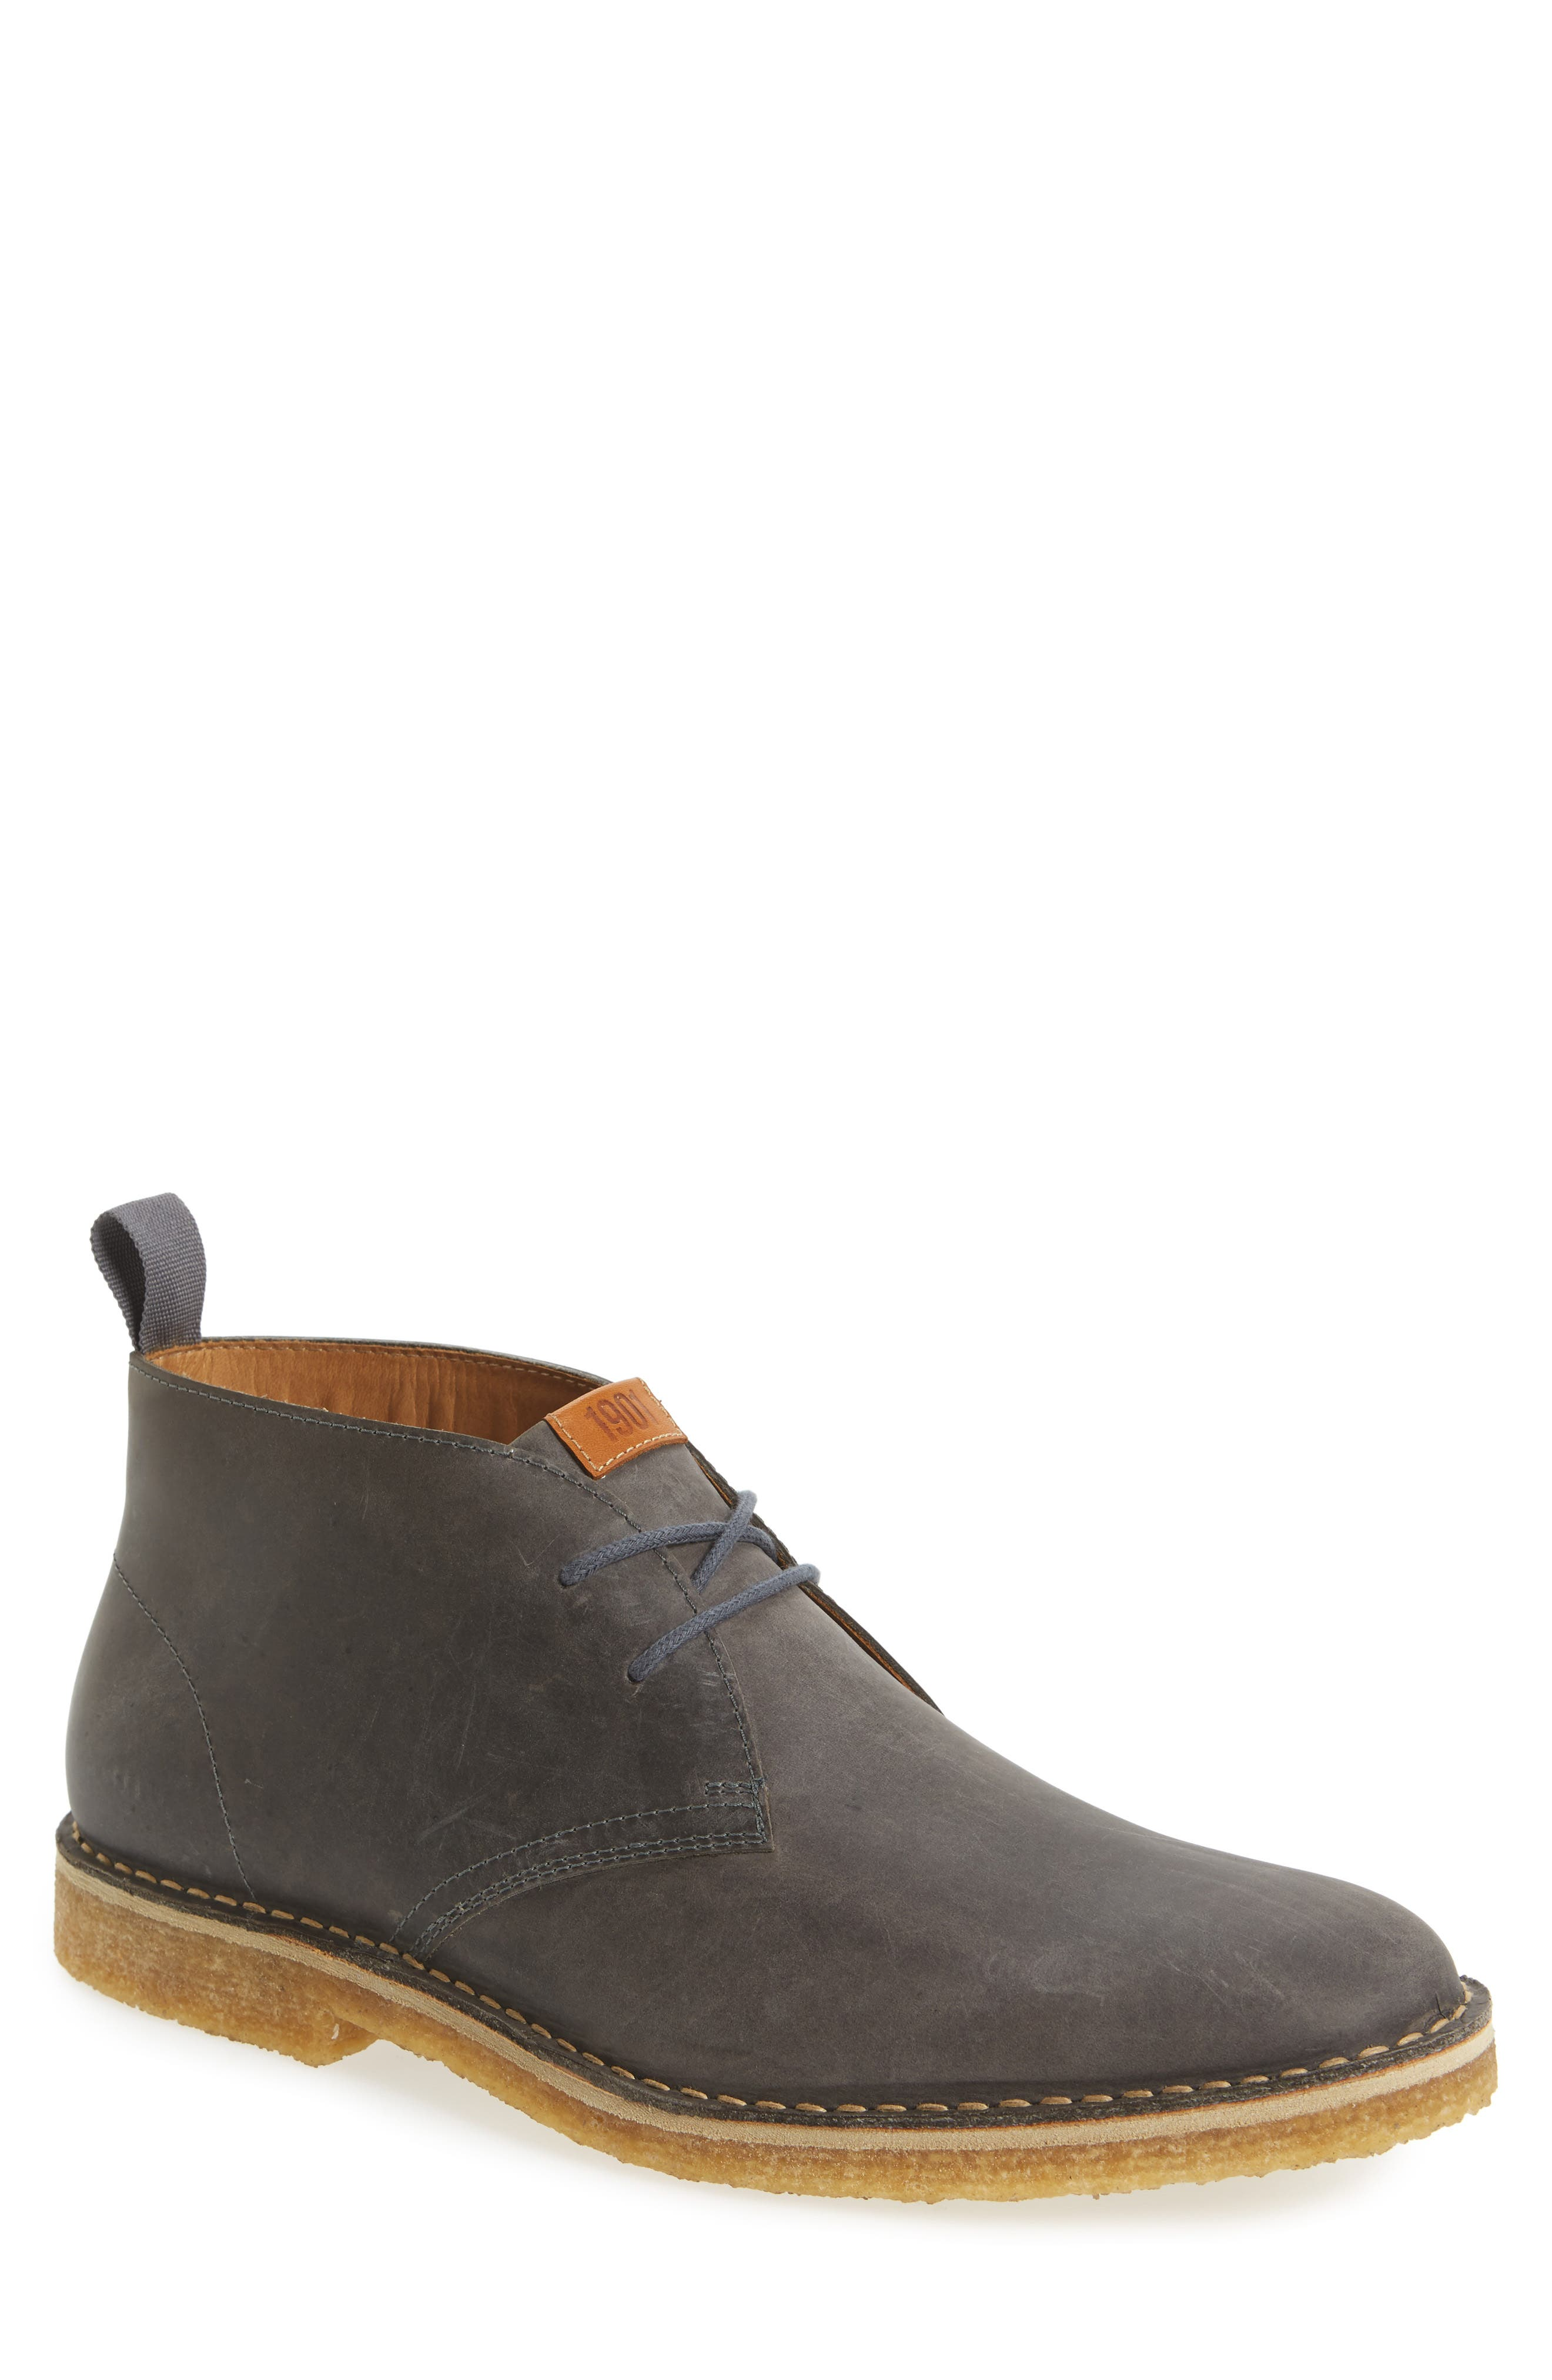 Westport Chukka Boot,                         Main,                         color, 020